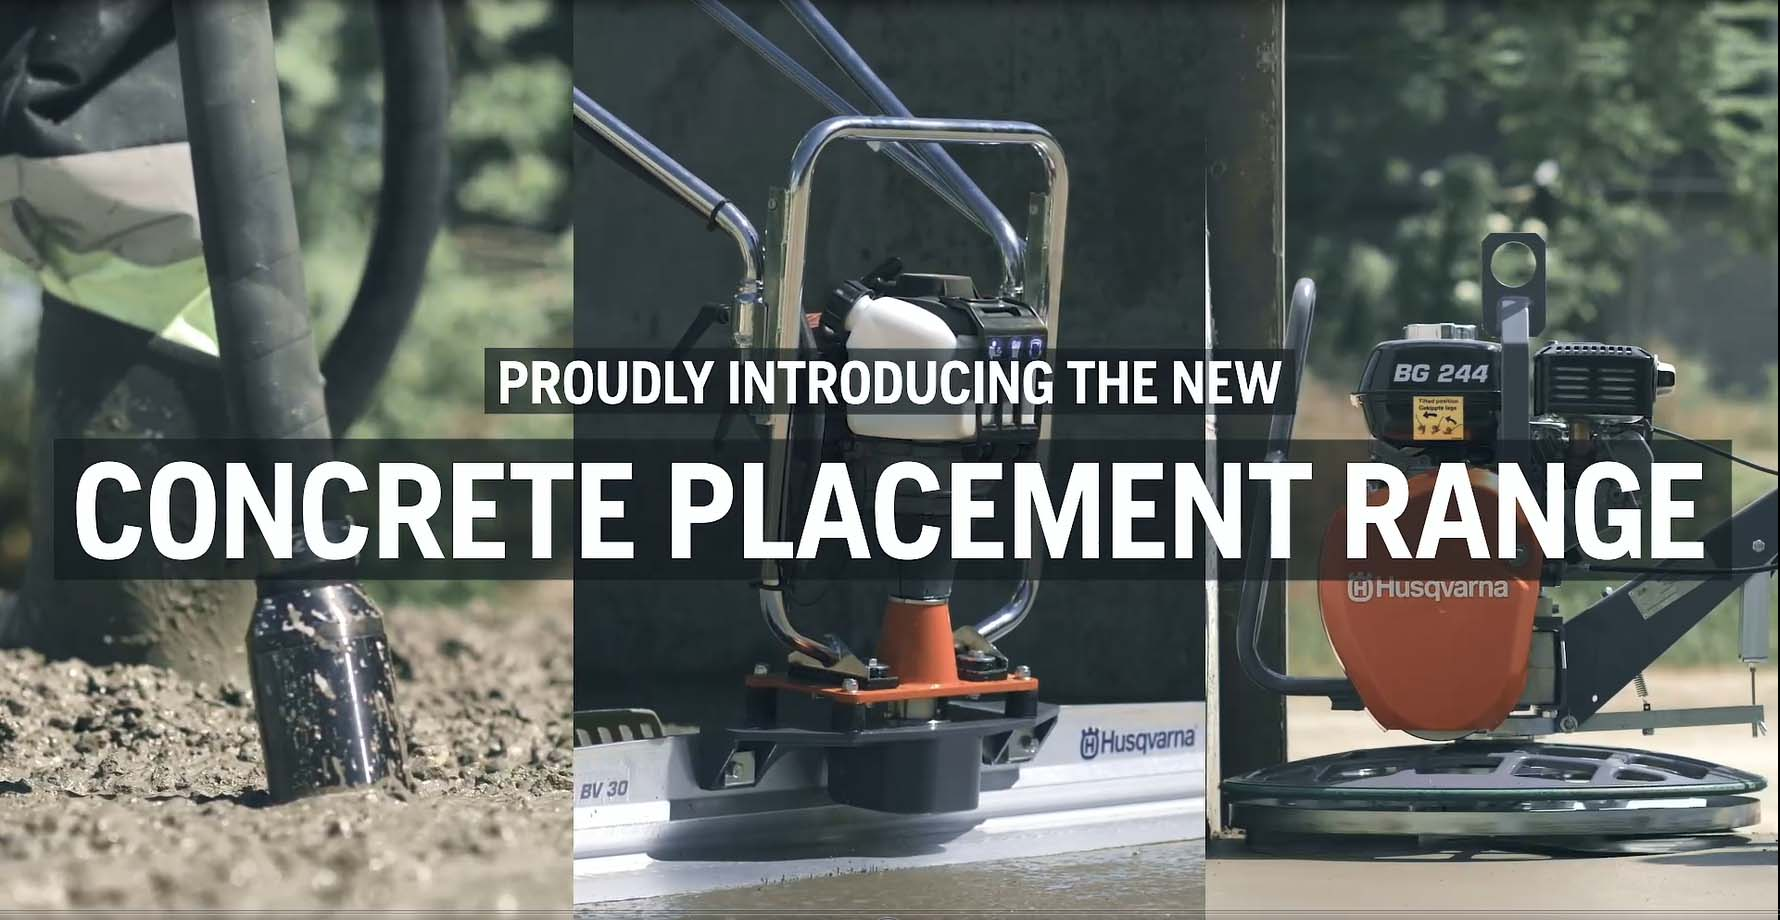 Concrete placement equipment product range film